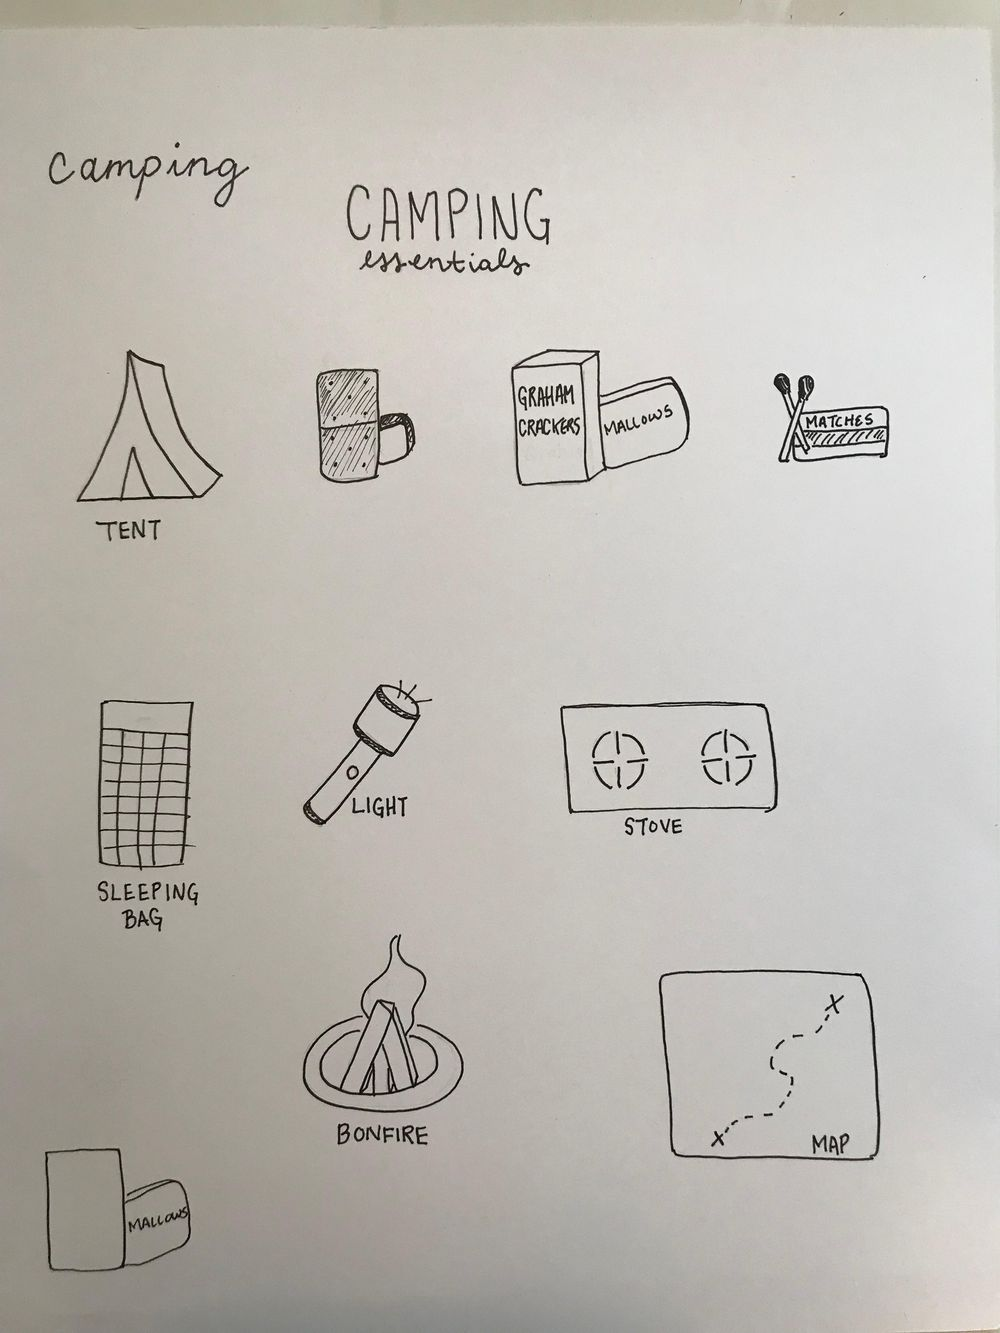 Camping Essentials - image 1 - student project